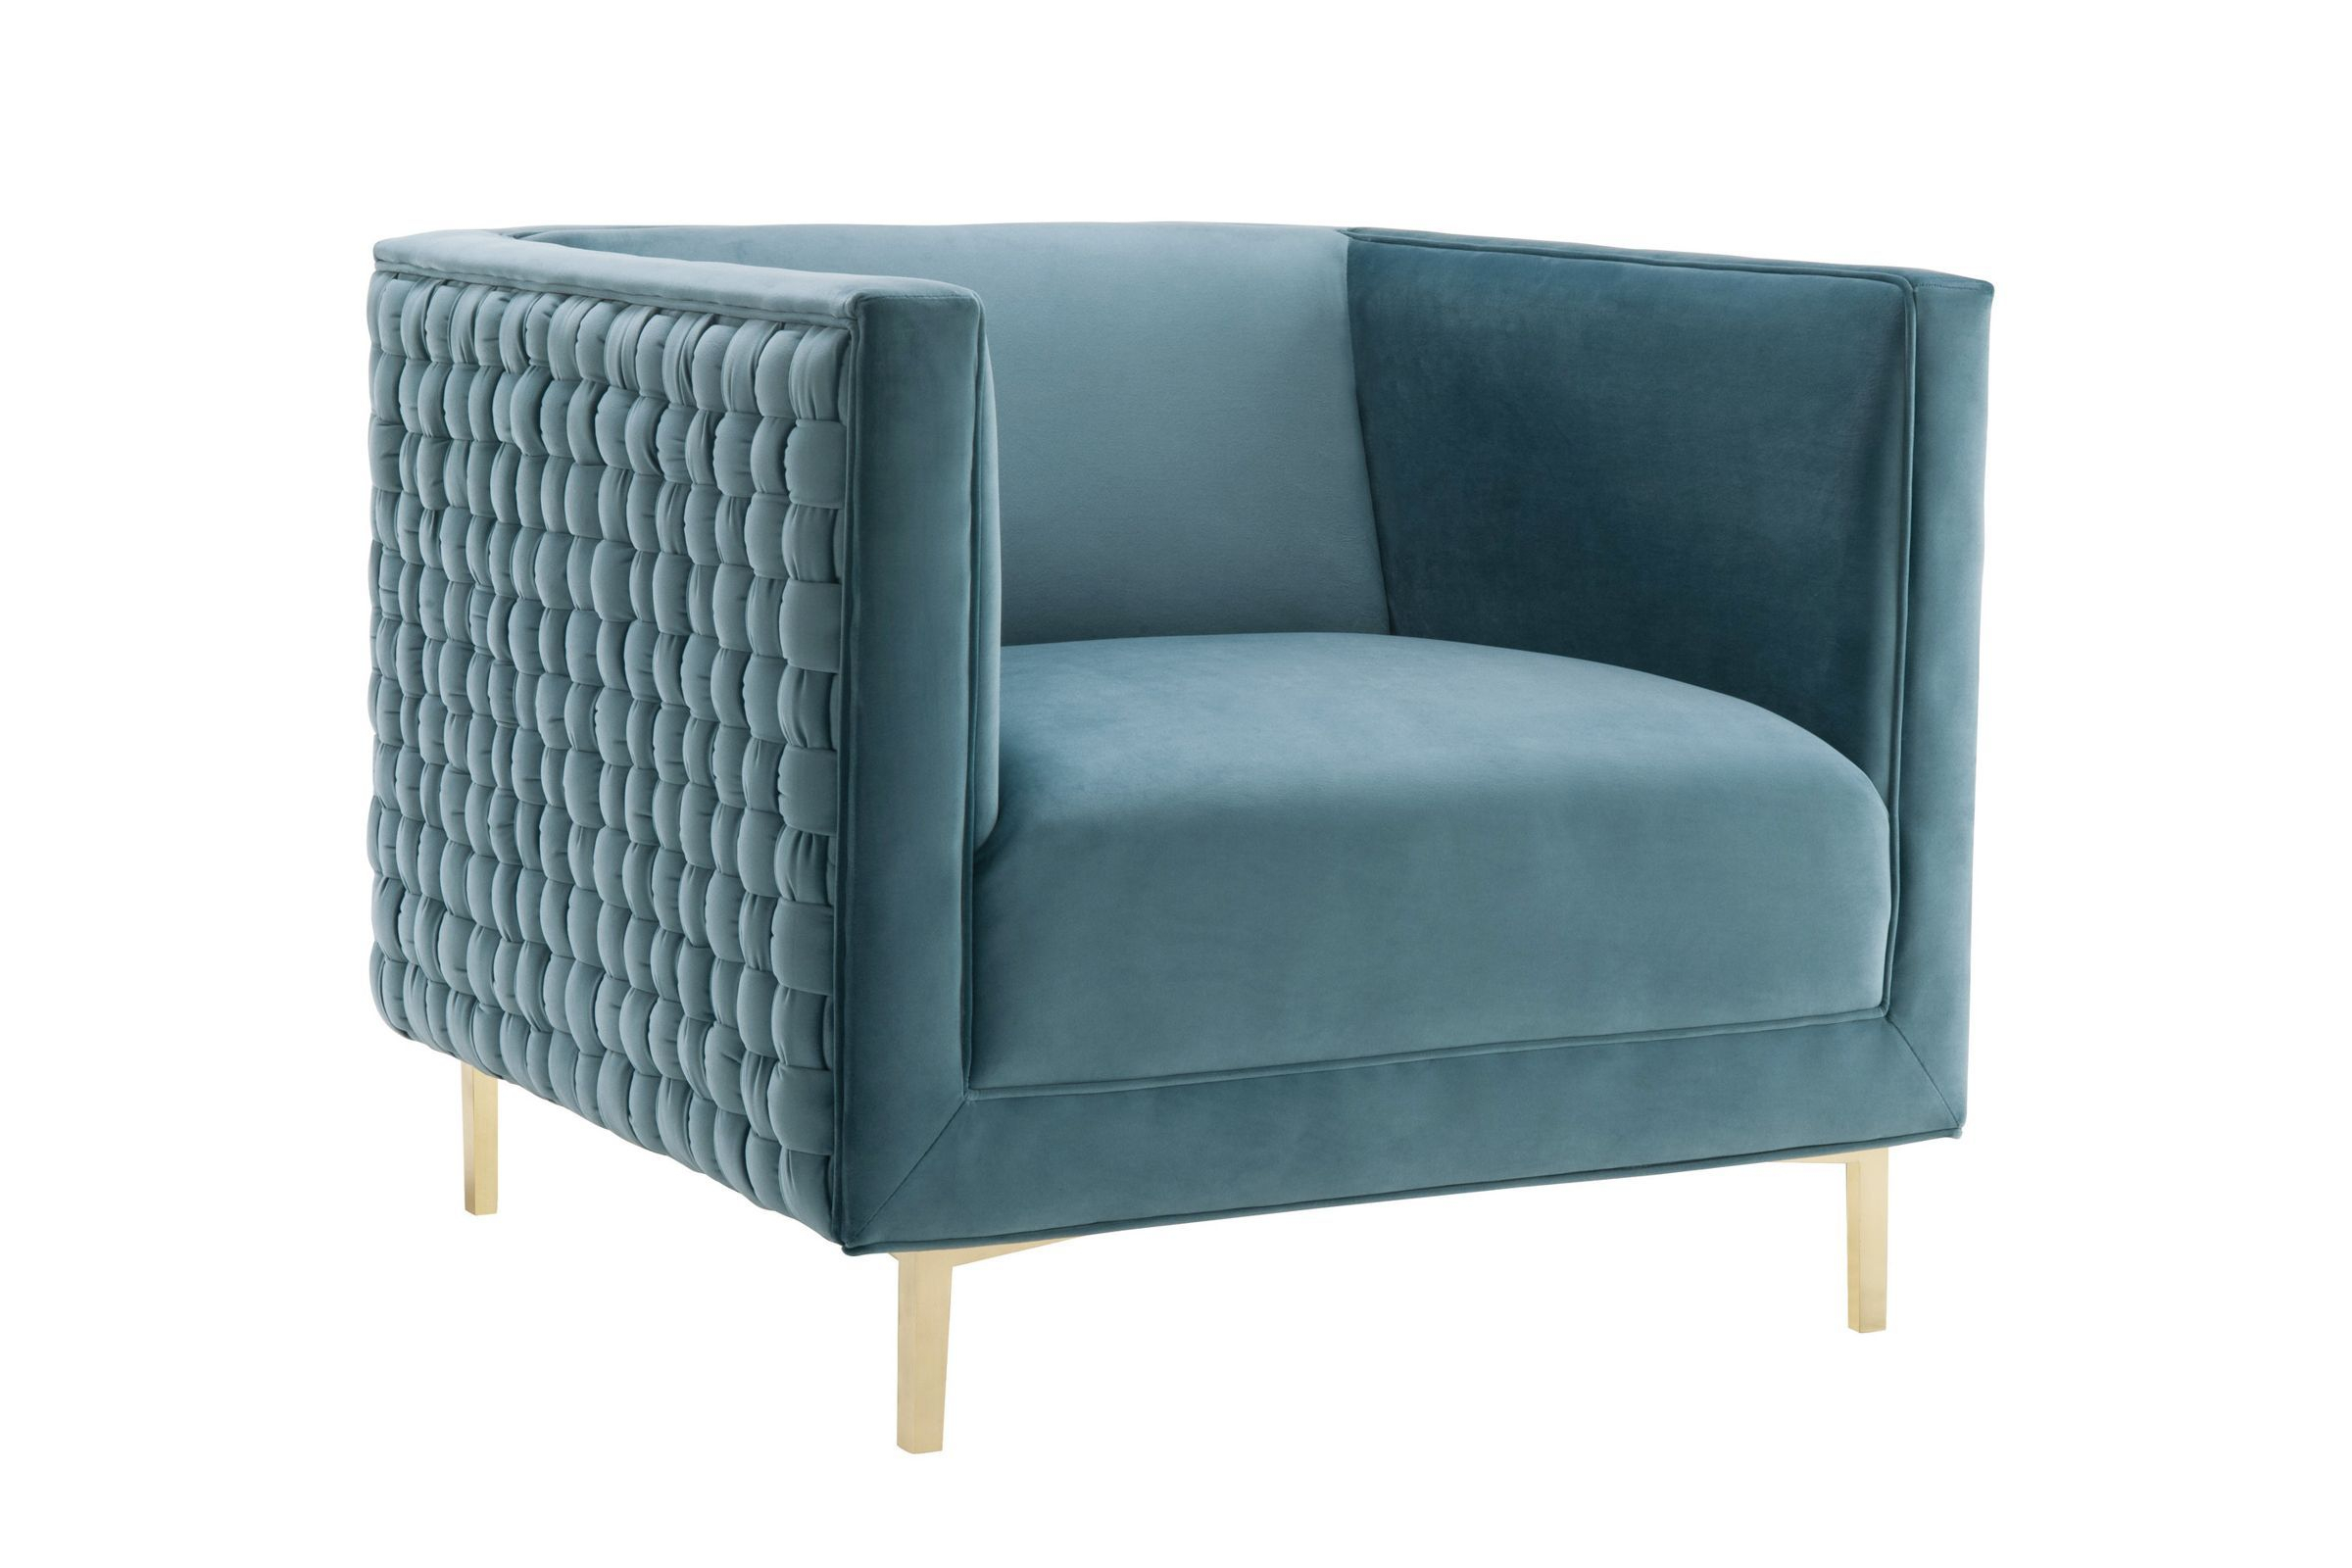 Sal Sea Blue Woven Chairtov In 2020 | Woven Chair Pertaining To Lucea Faux Leather Barrel Chairs And Ottoman (View 5 of 15)